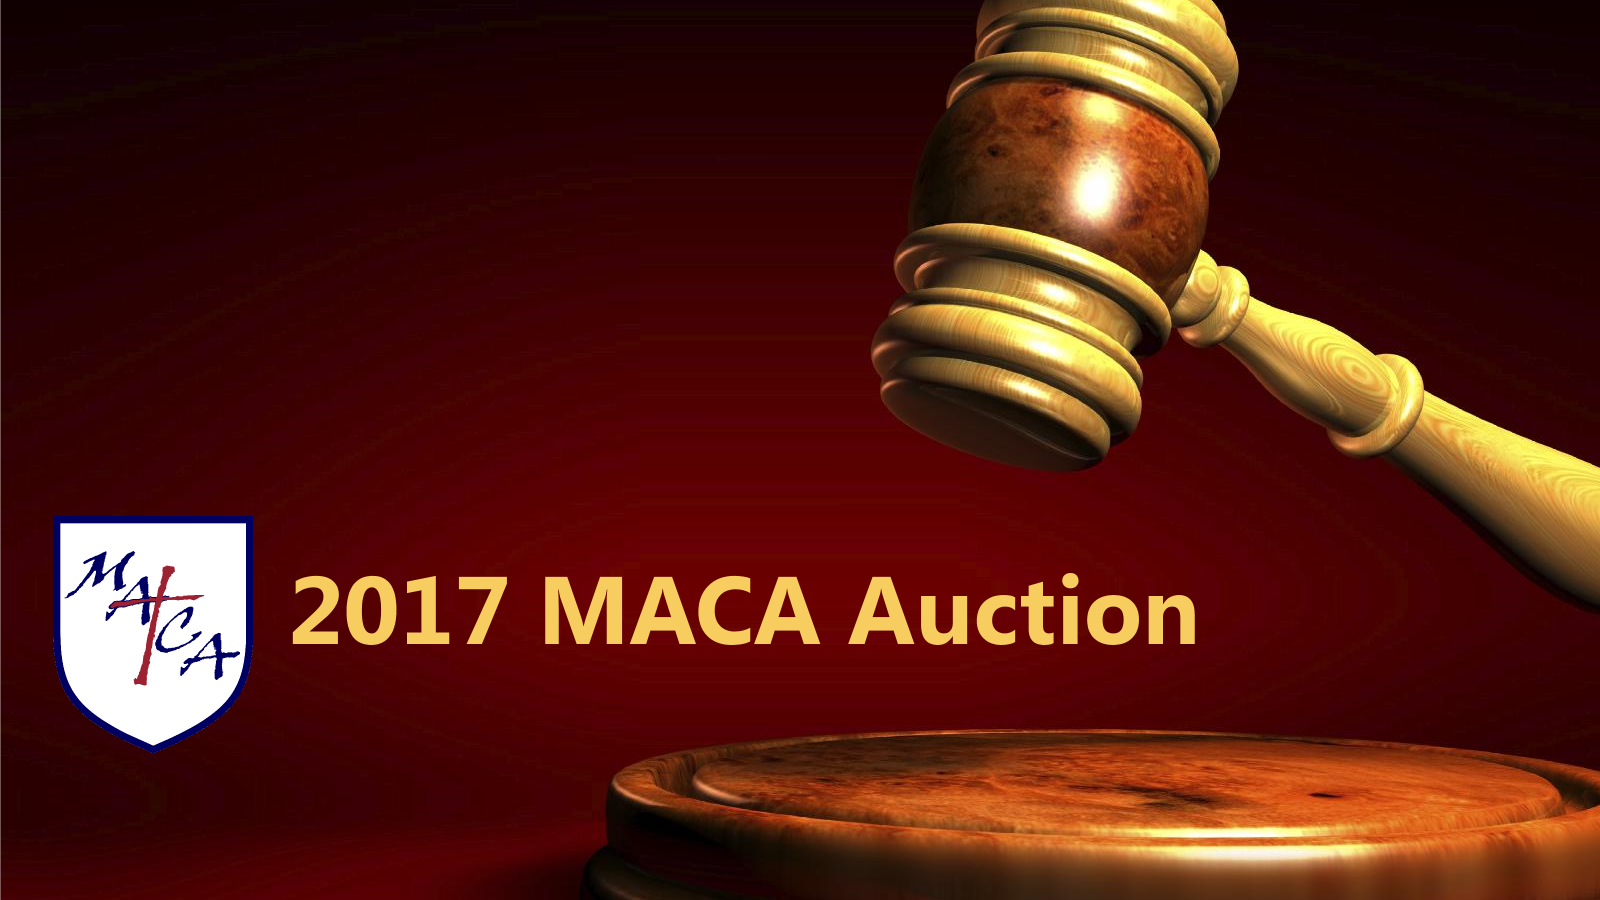 2017 MACA Auction